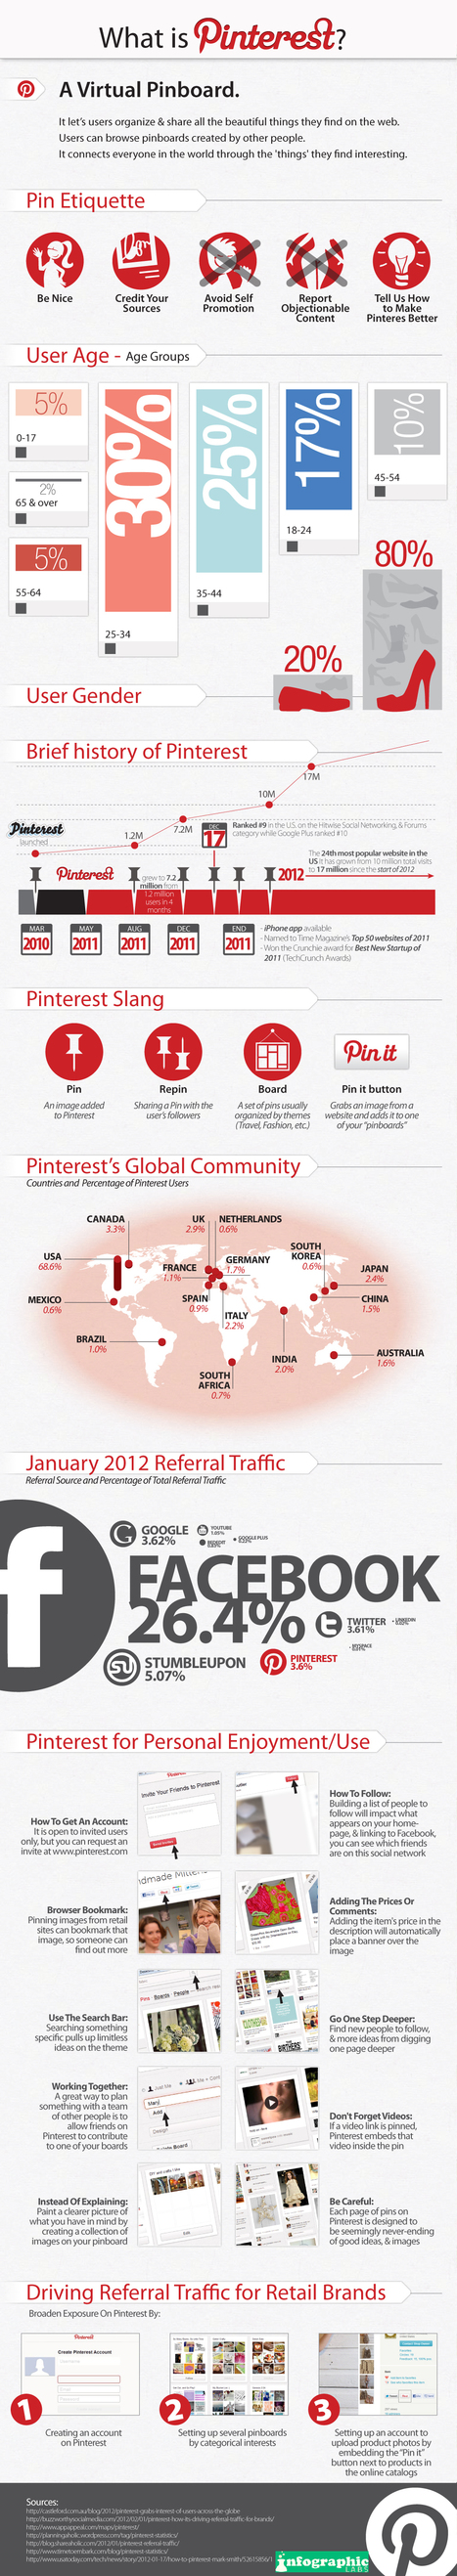 Pinterest – The Social Media Darling Of 2012: Infographic | Online Media Trends | Scoop.it